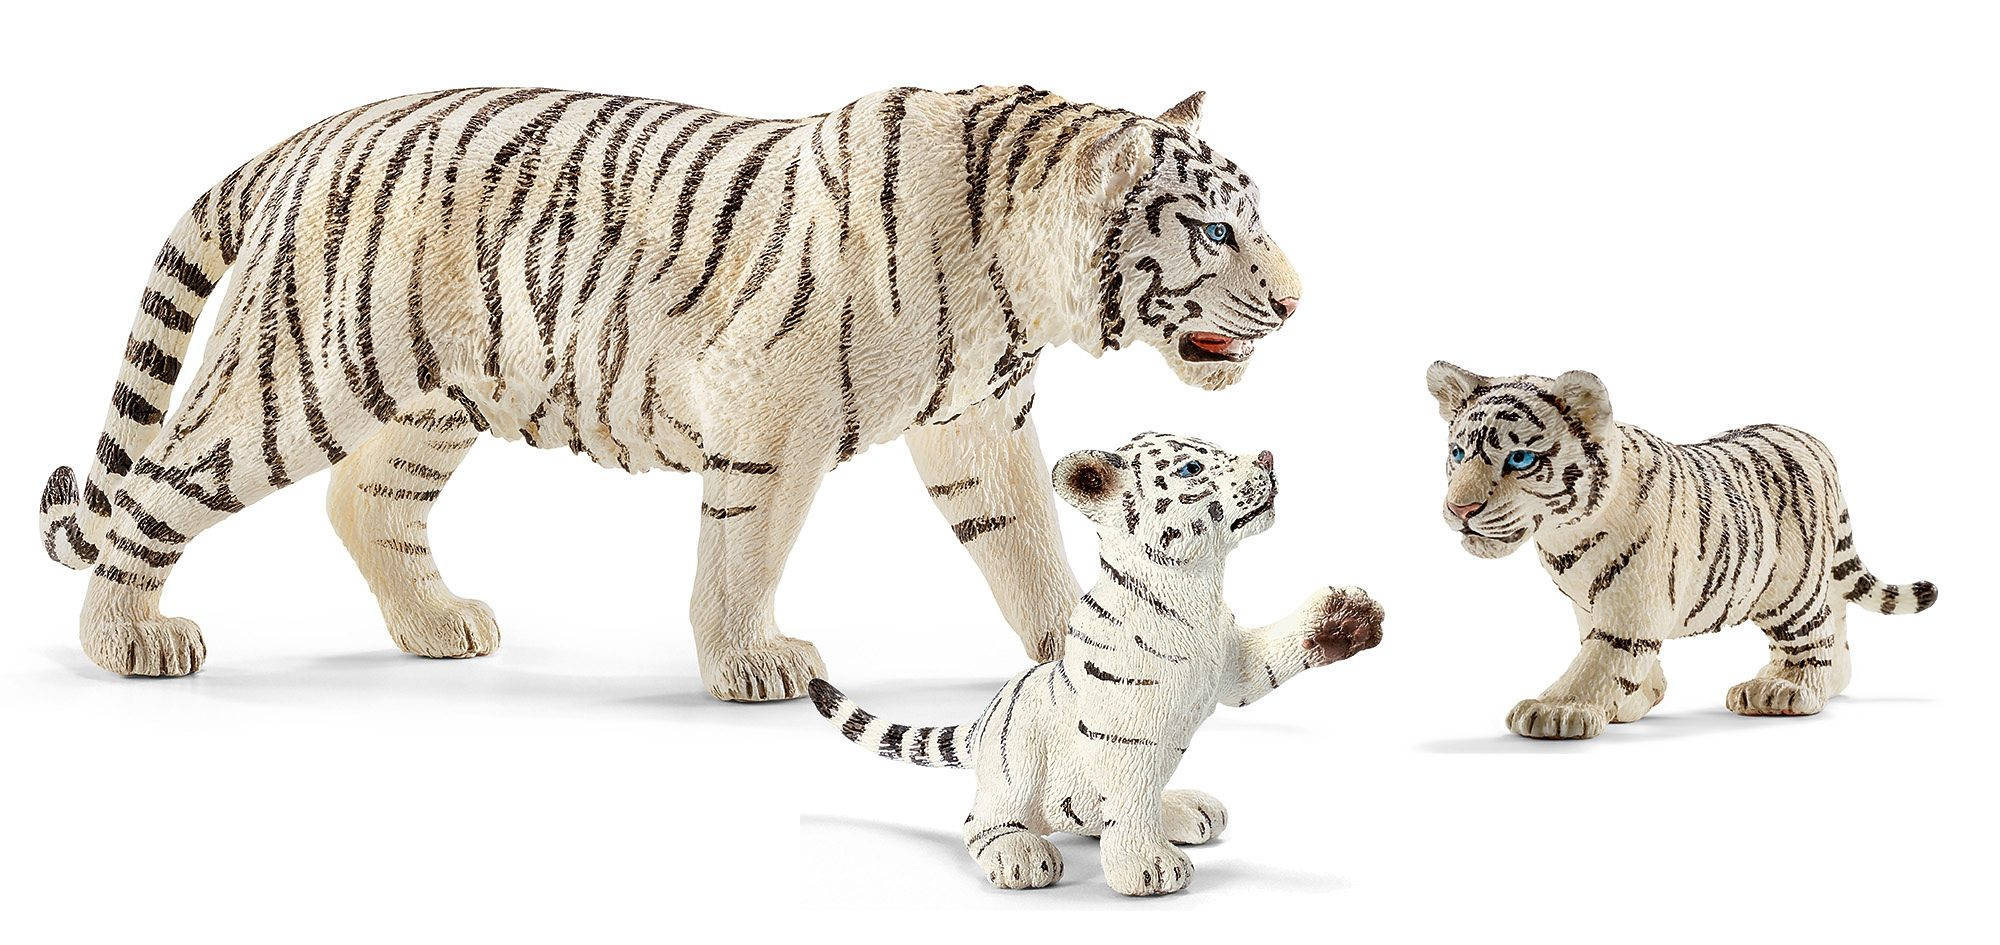 Schleich® Spielfigurenset 3-tlg., »World of Nature, Wild Life - Weißer Tiger«